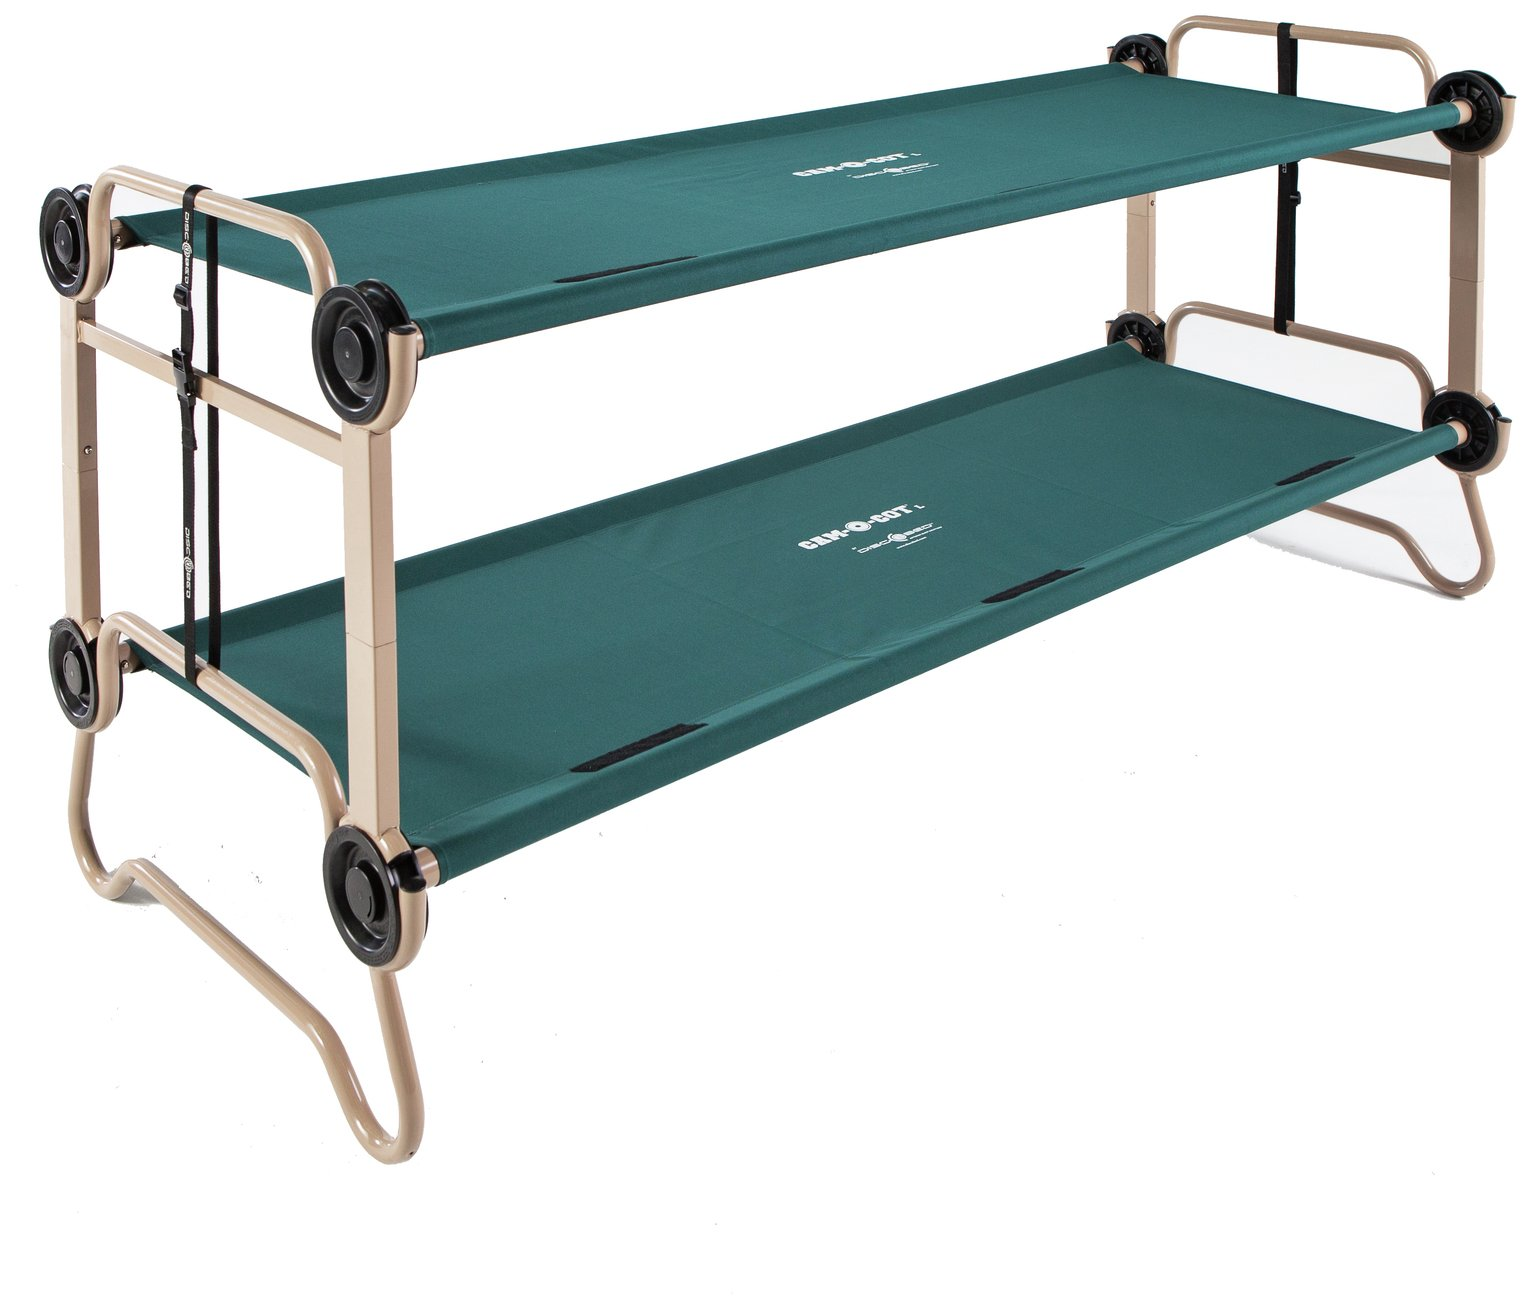 Image of Disc-O-Bed Mobile Bunk Bed - X Large